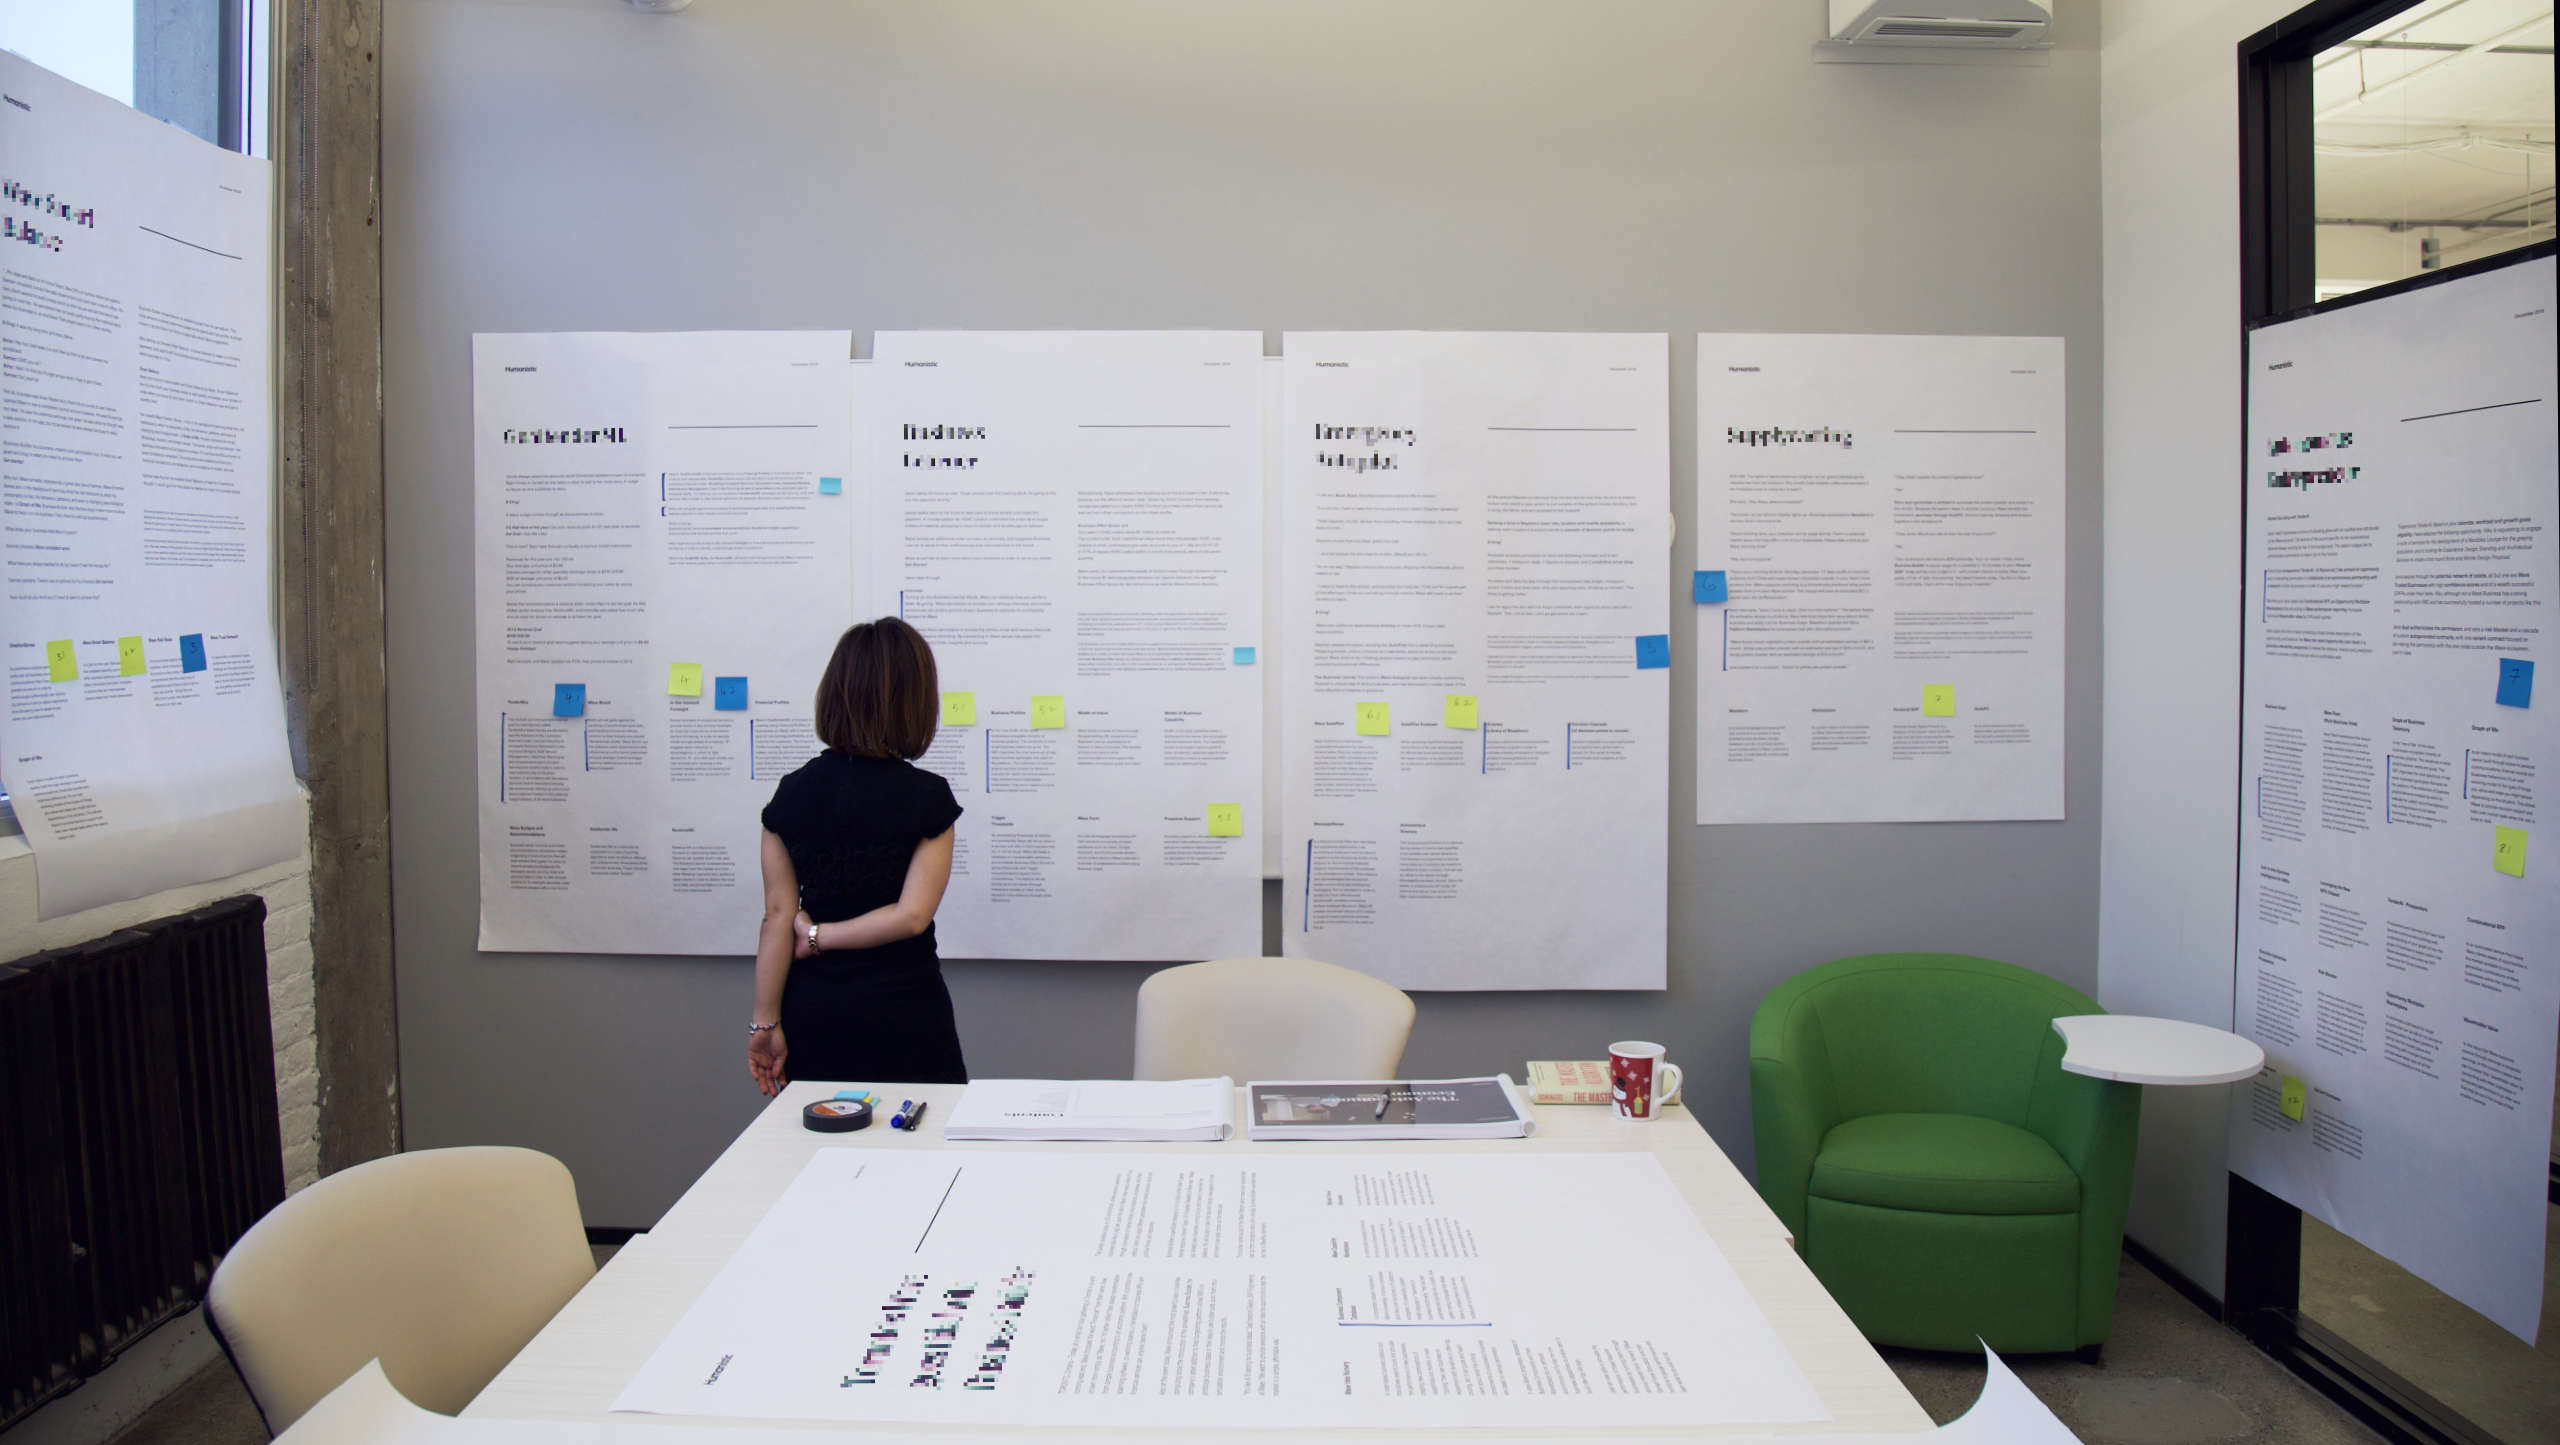 A woman stands in a board room, looking at large posters of a project deliverables